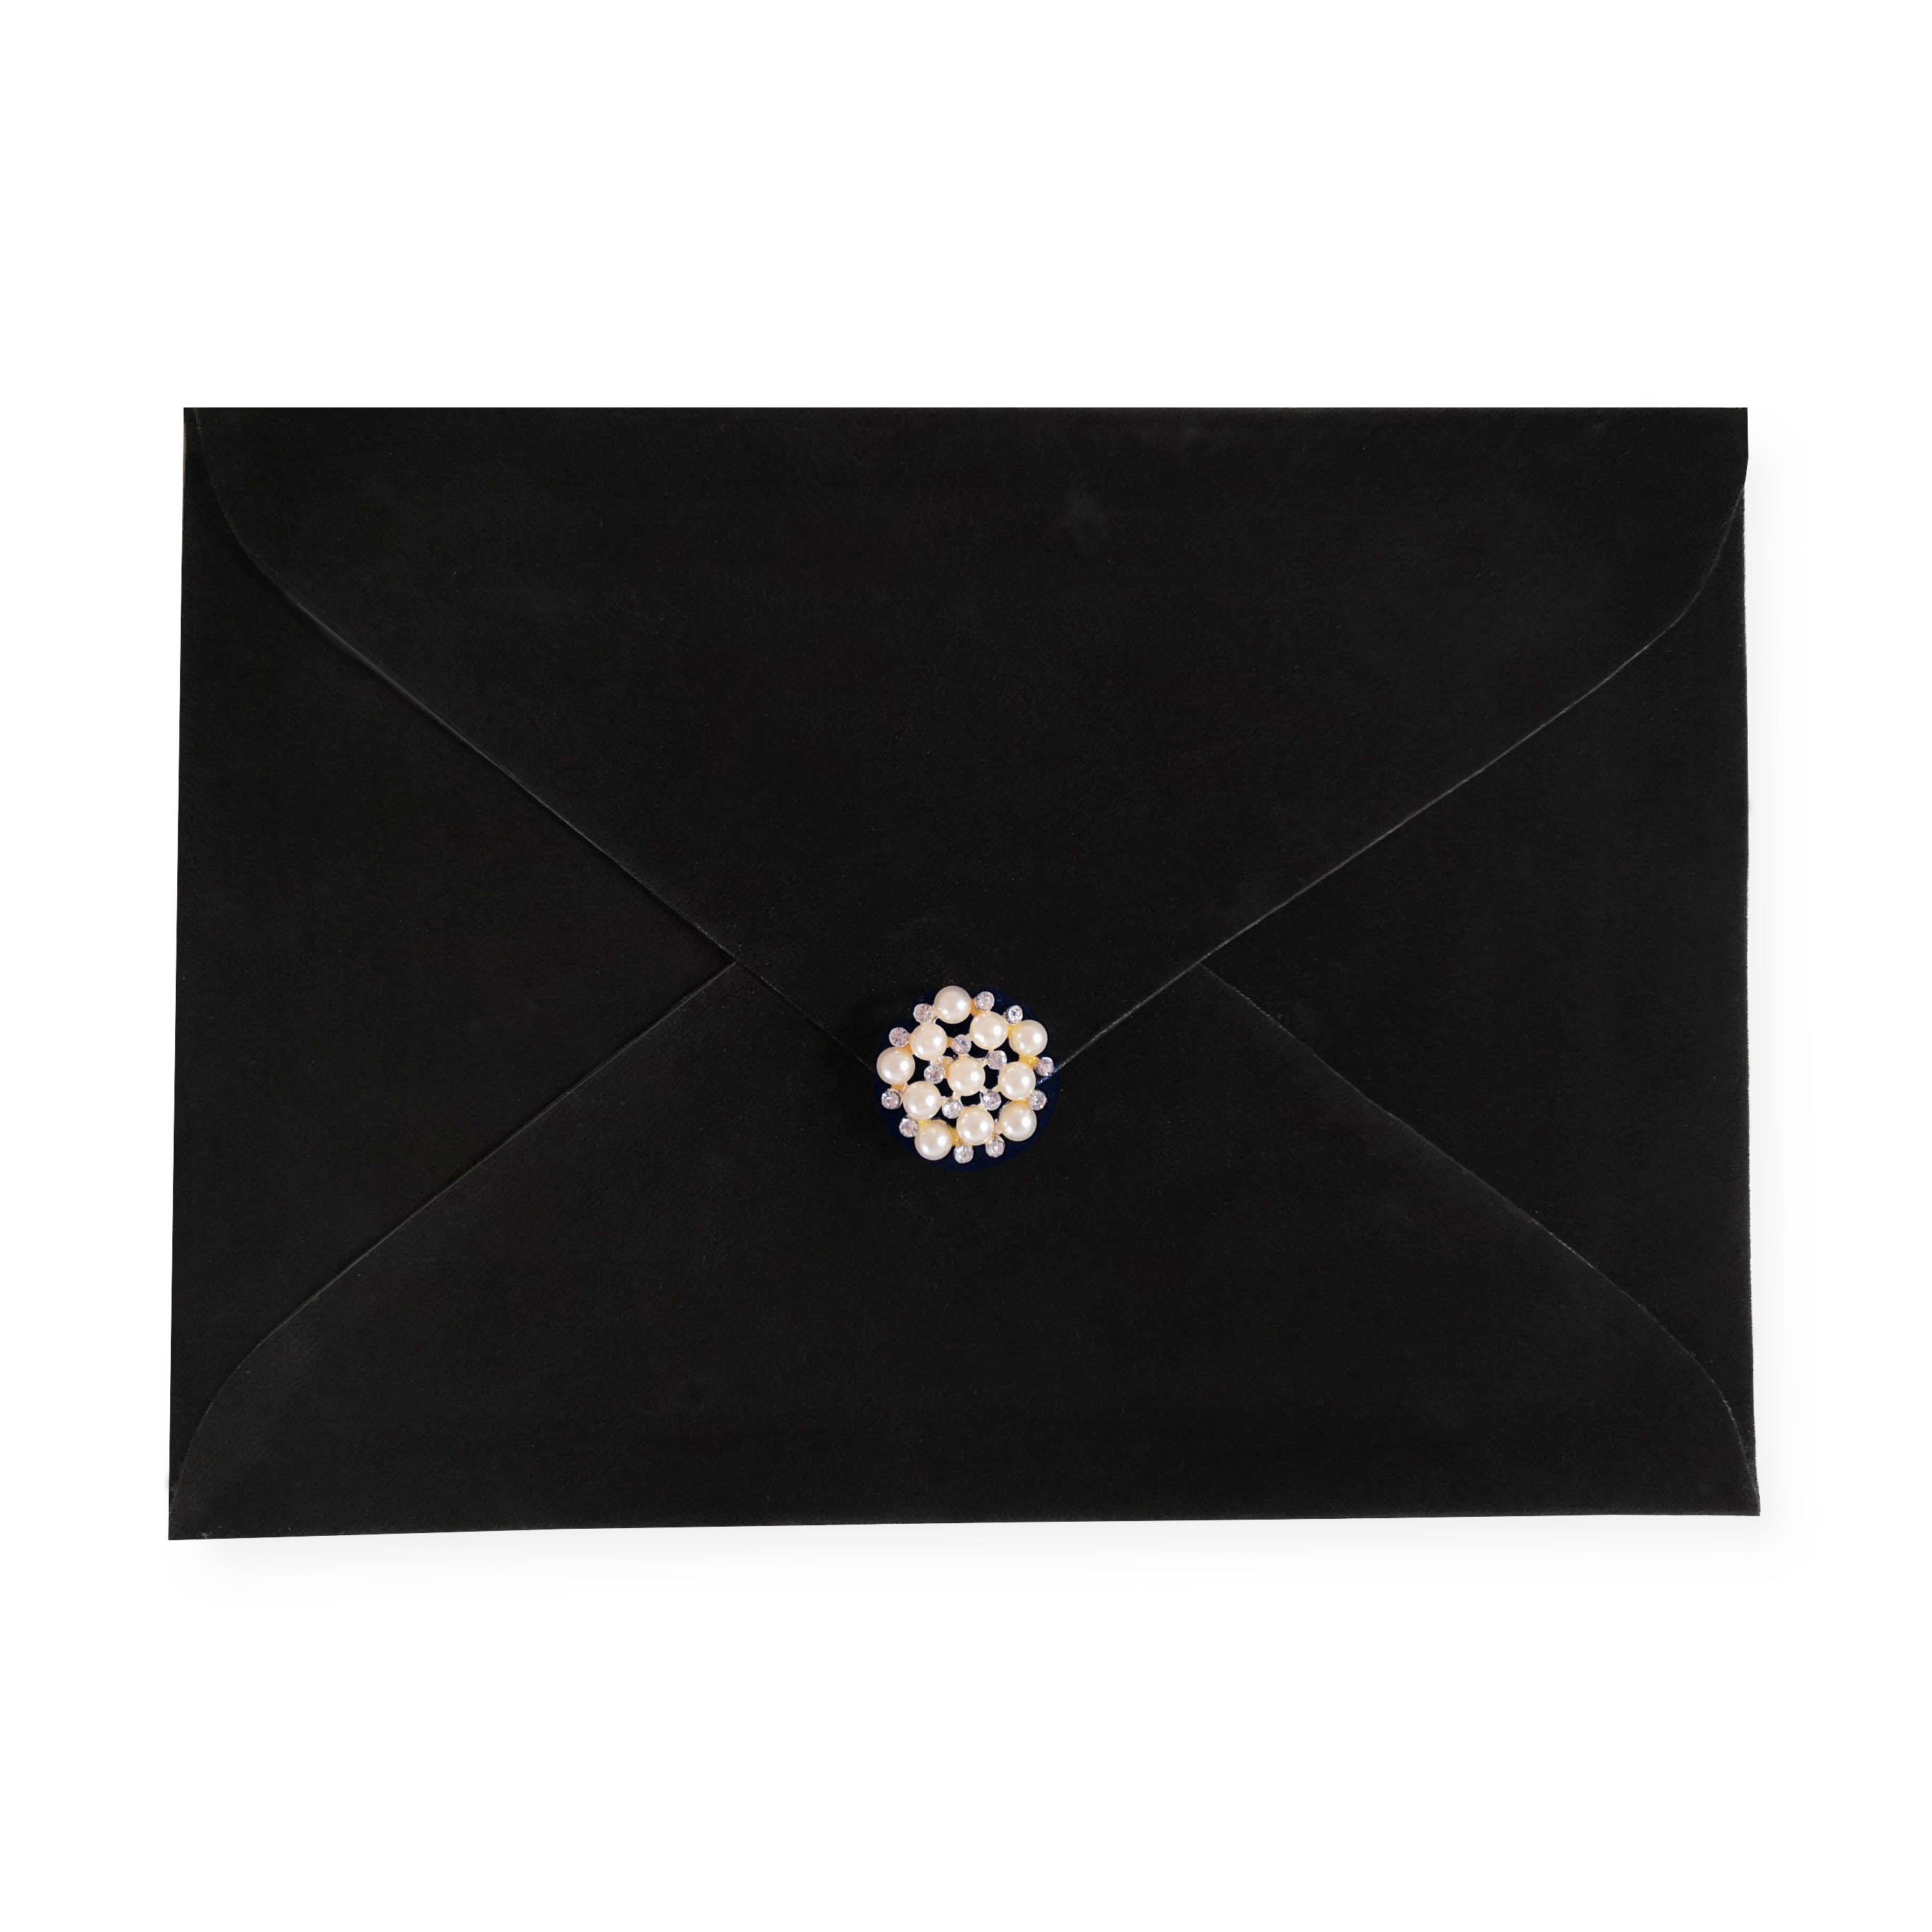 Black velvet invitation envelope